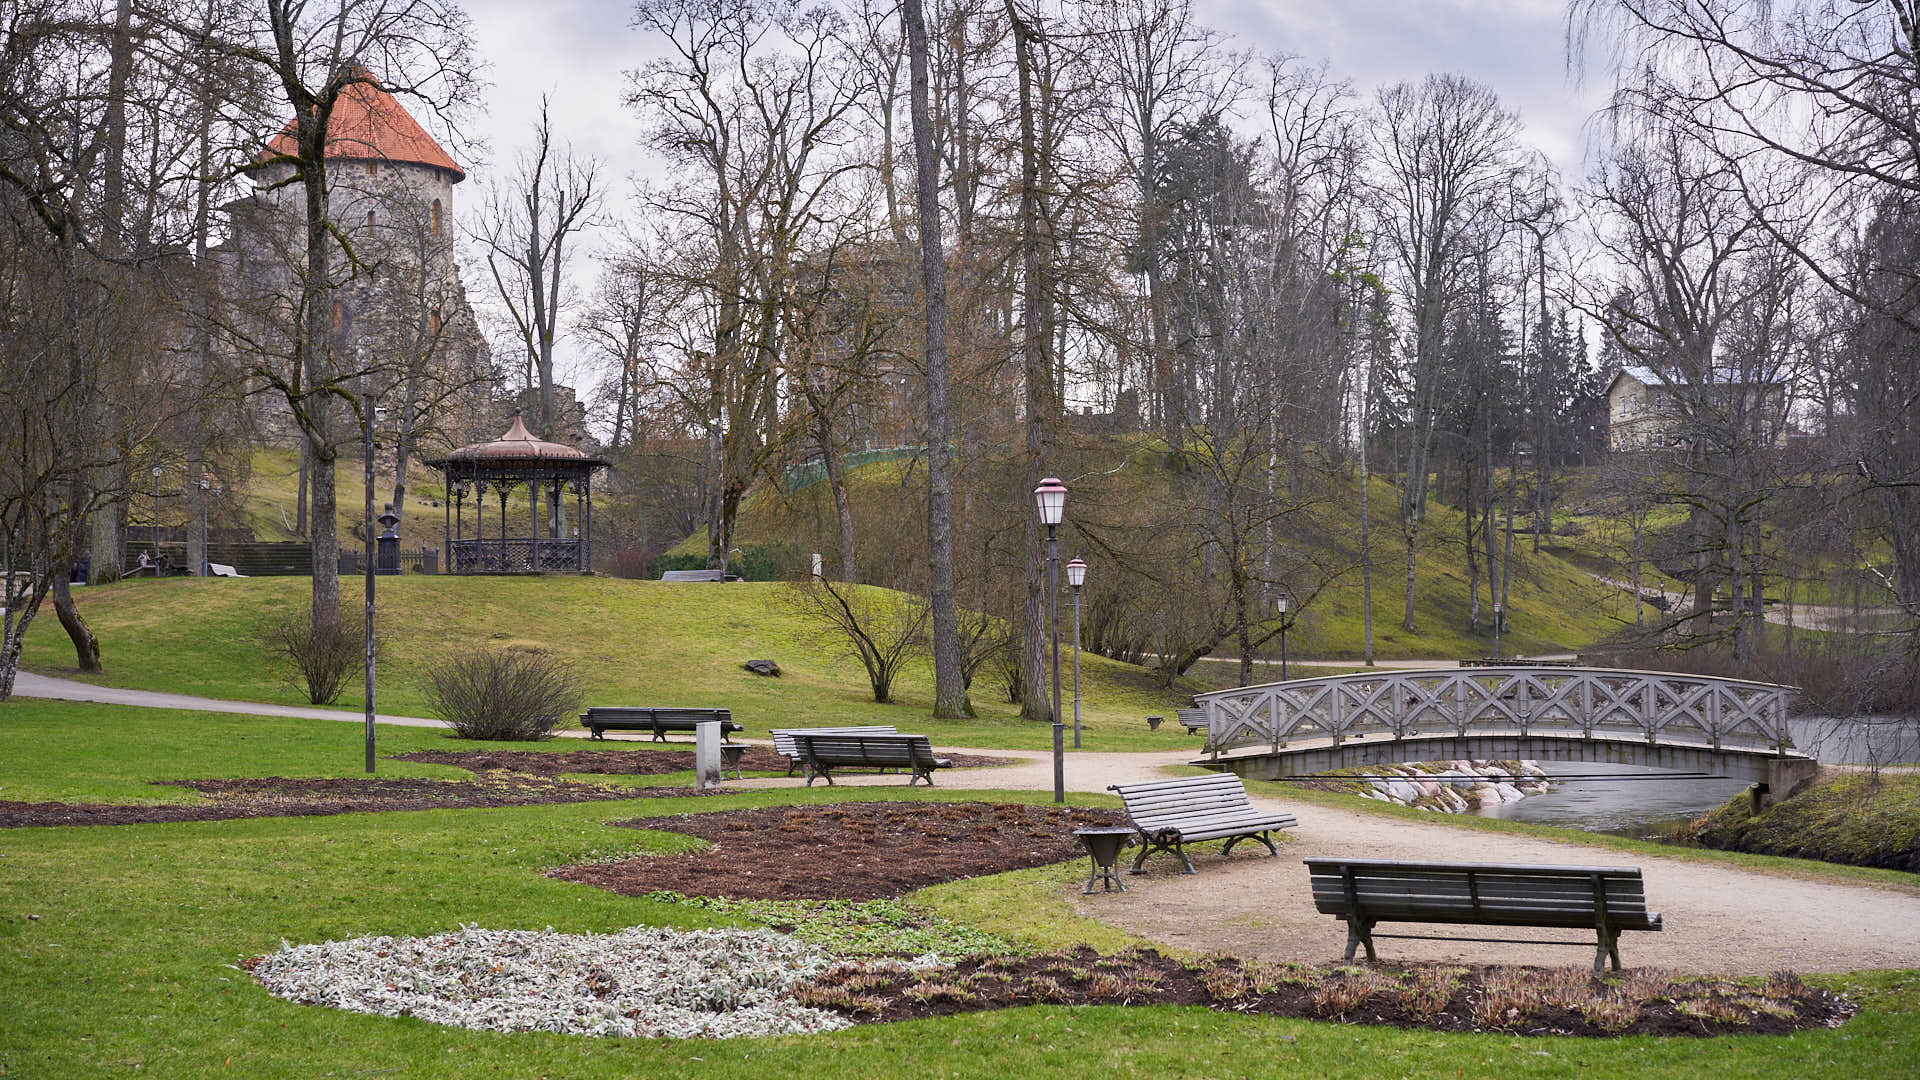 Park near the New Castle of Cesis, Latvia